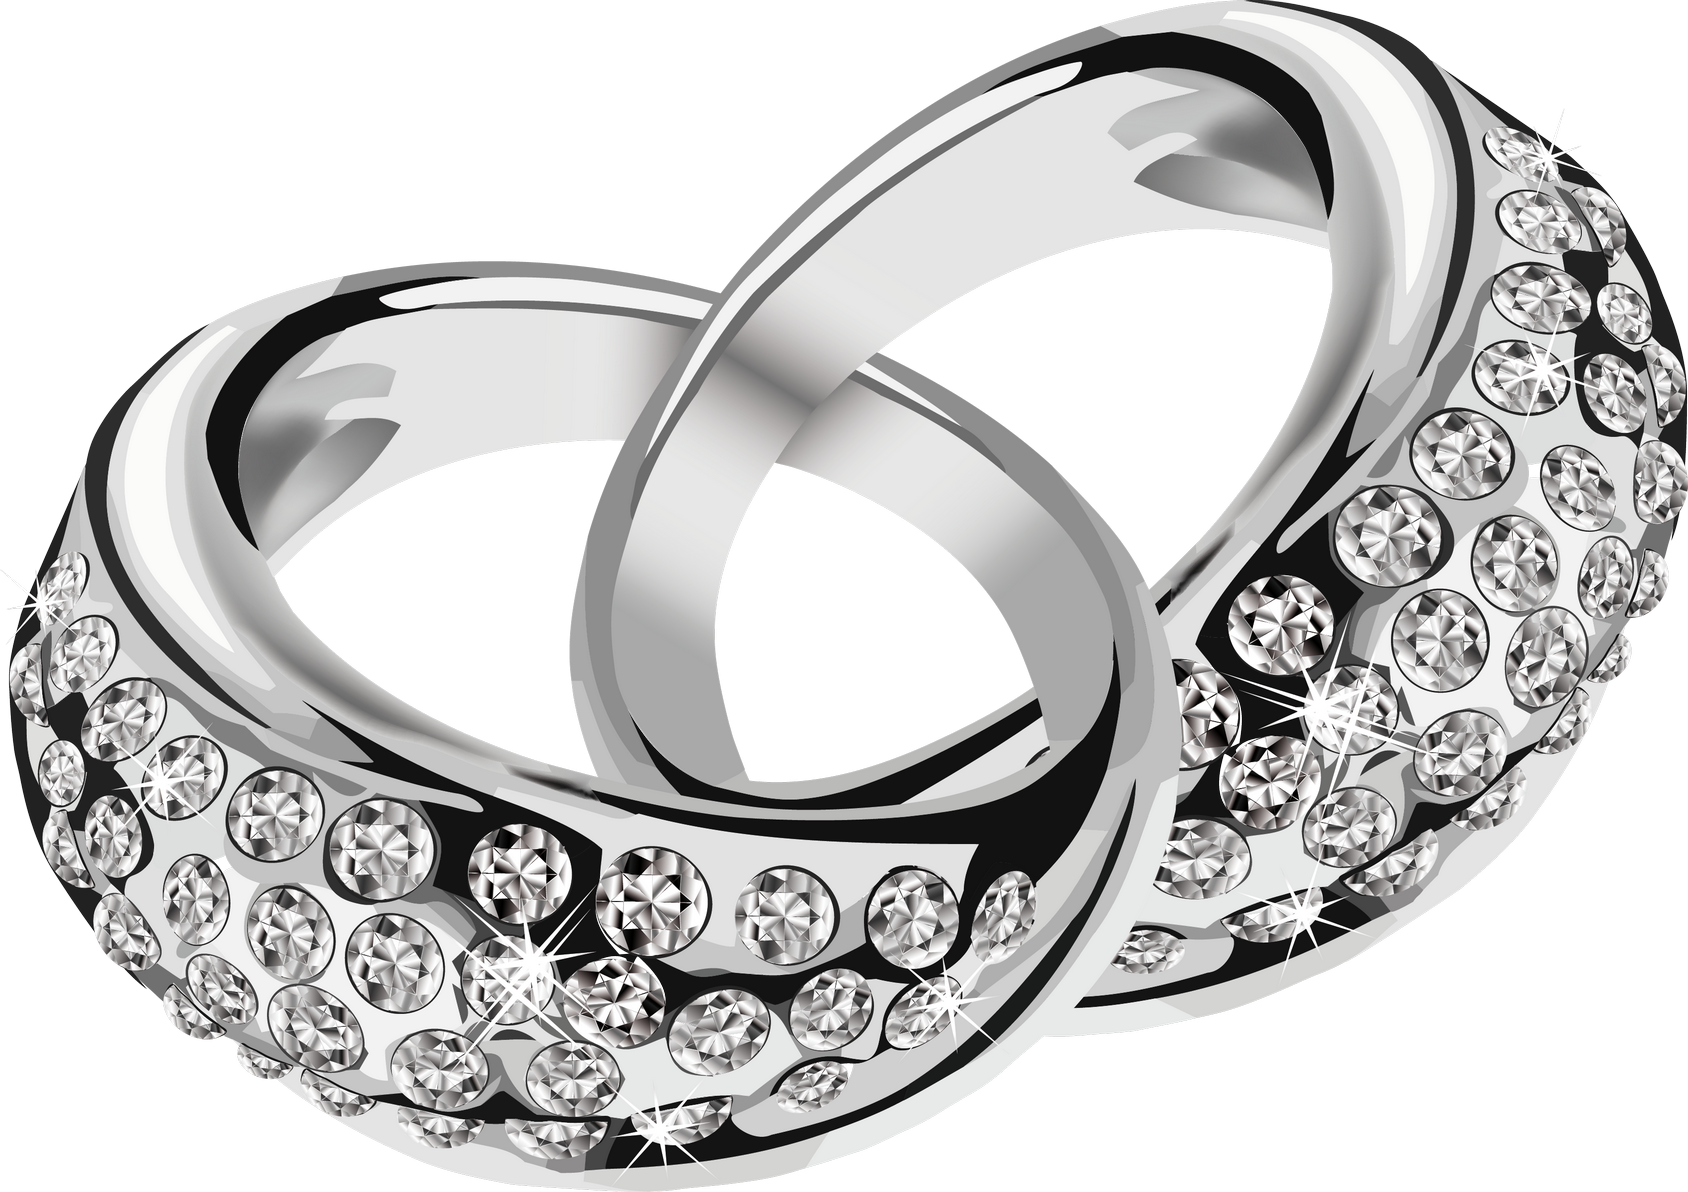 Silver Ring With Diamond Mens Wedding Rings Wedding Rings Wedding Ring Sets